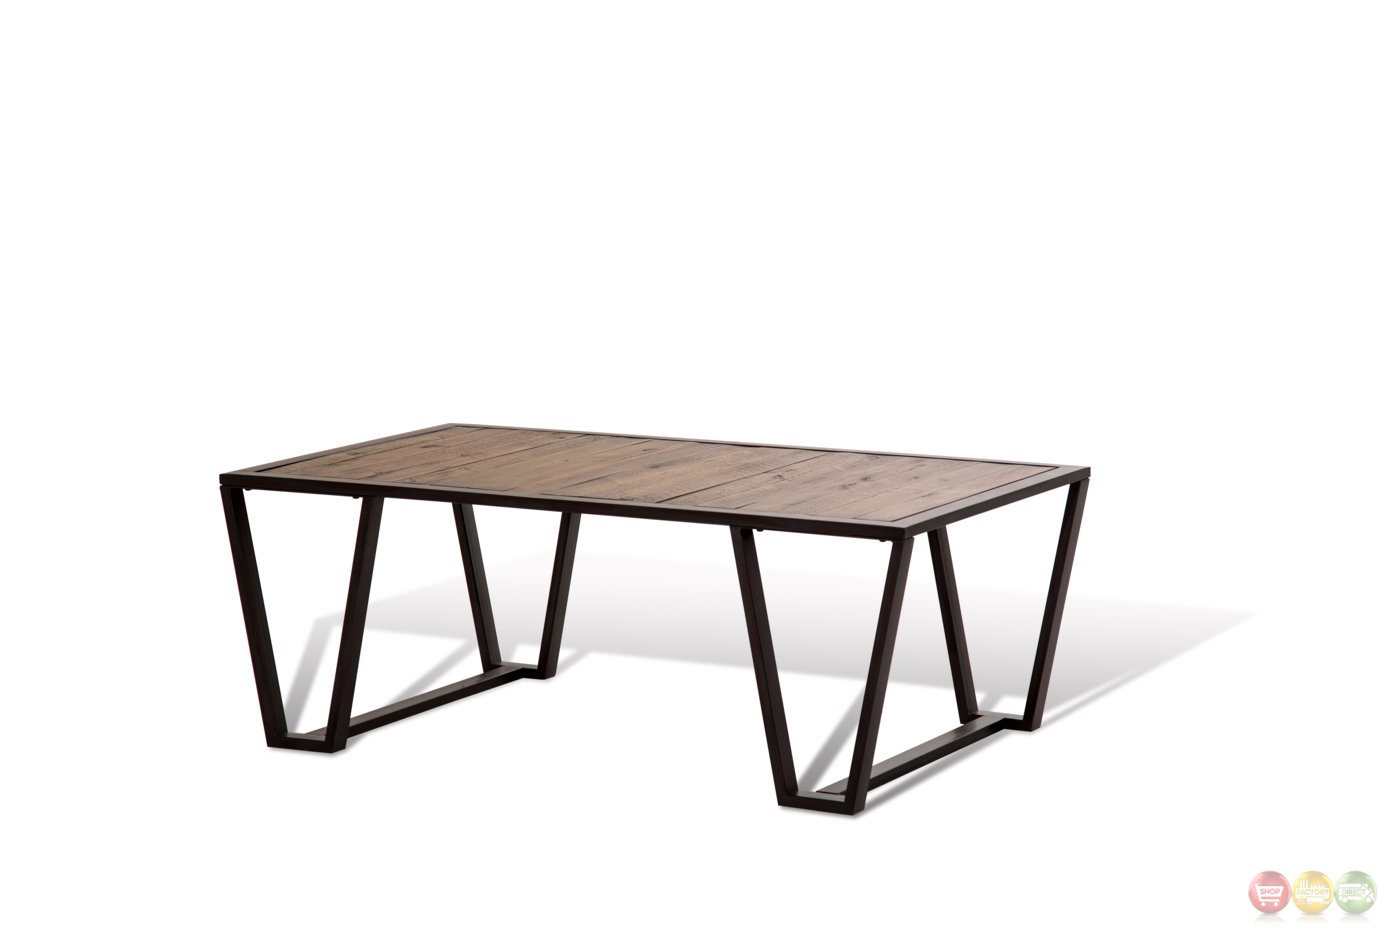 Silverton Rustic Coffee Table W Rough Sawn Wooden Top And Metal Base